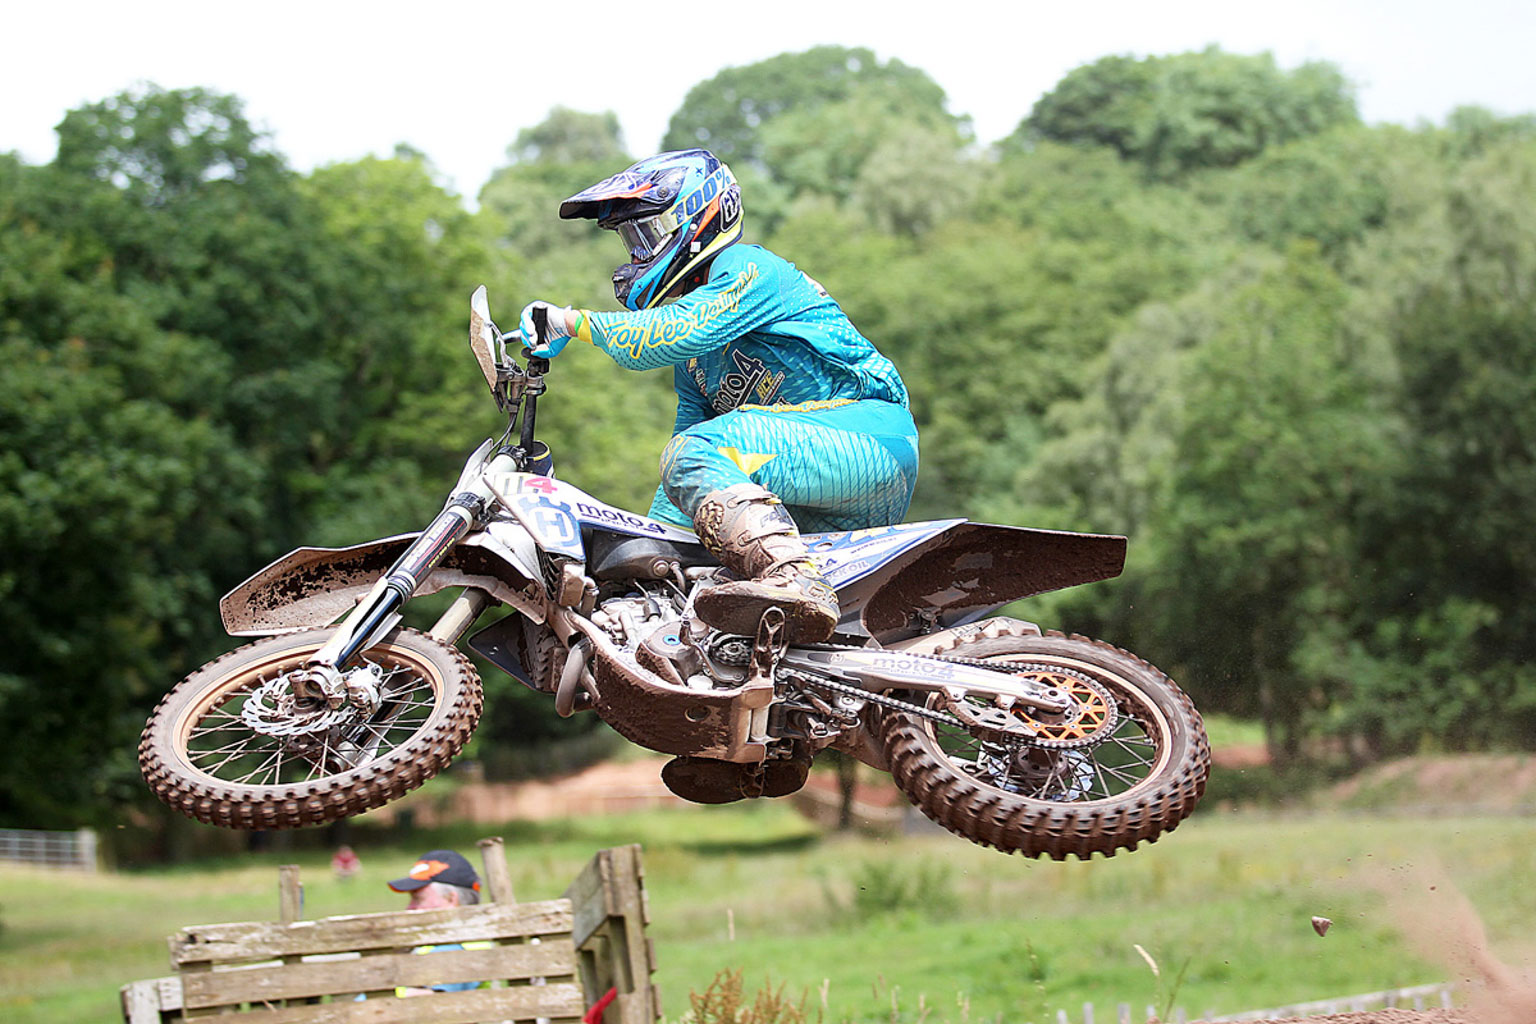 James Wainwright, 3rd in MX2